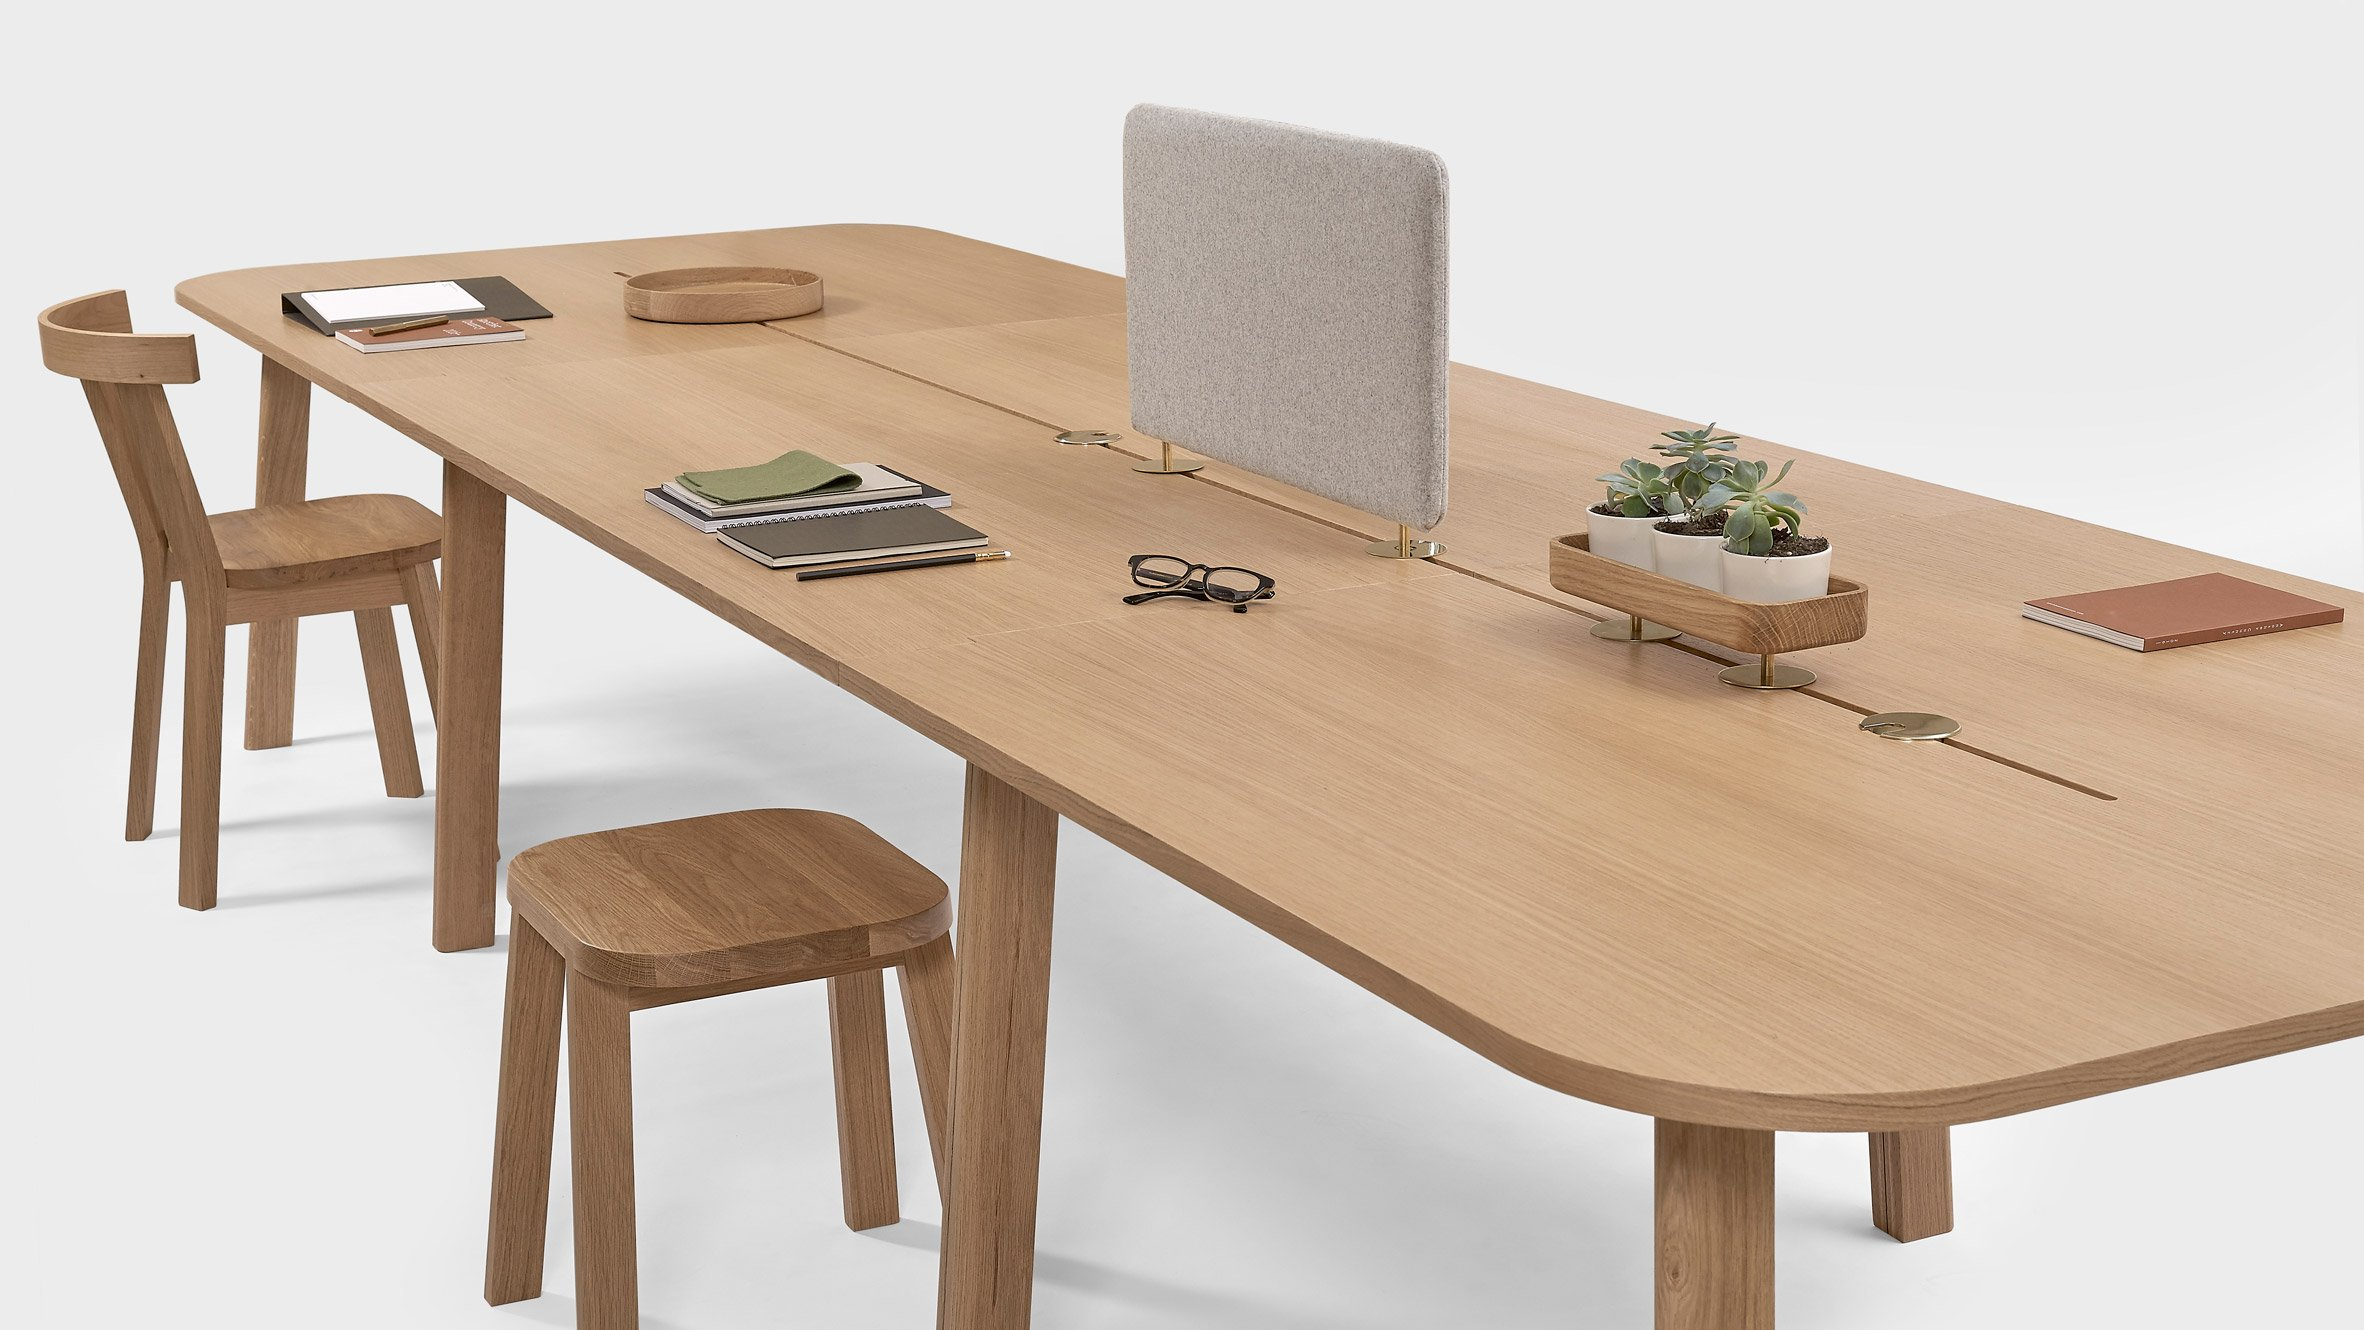 Desk design and product news Dezeen